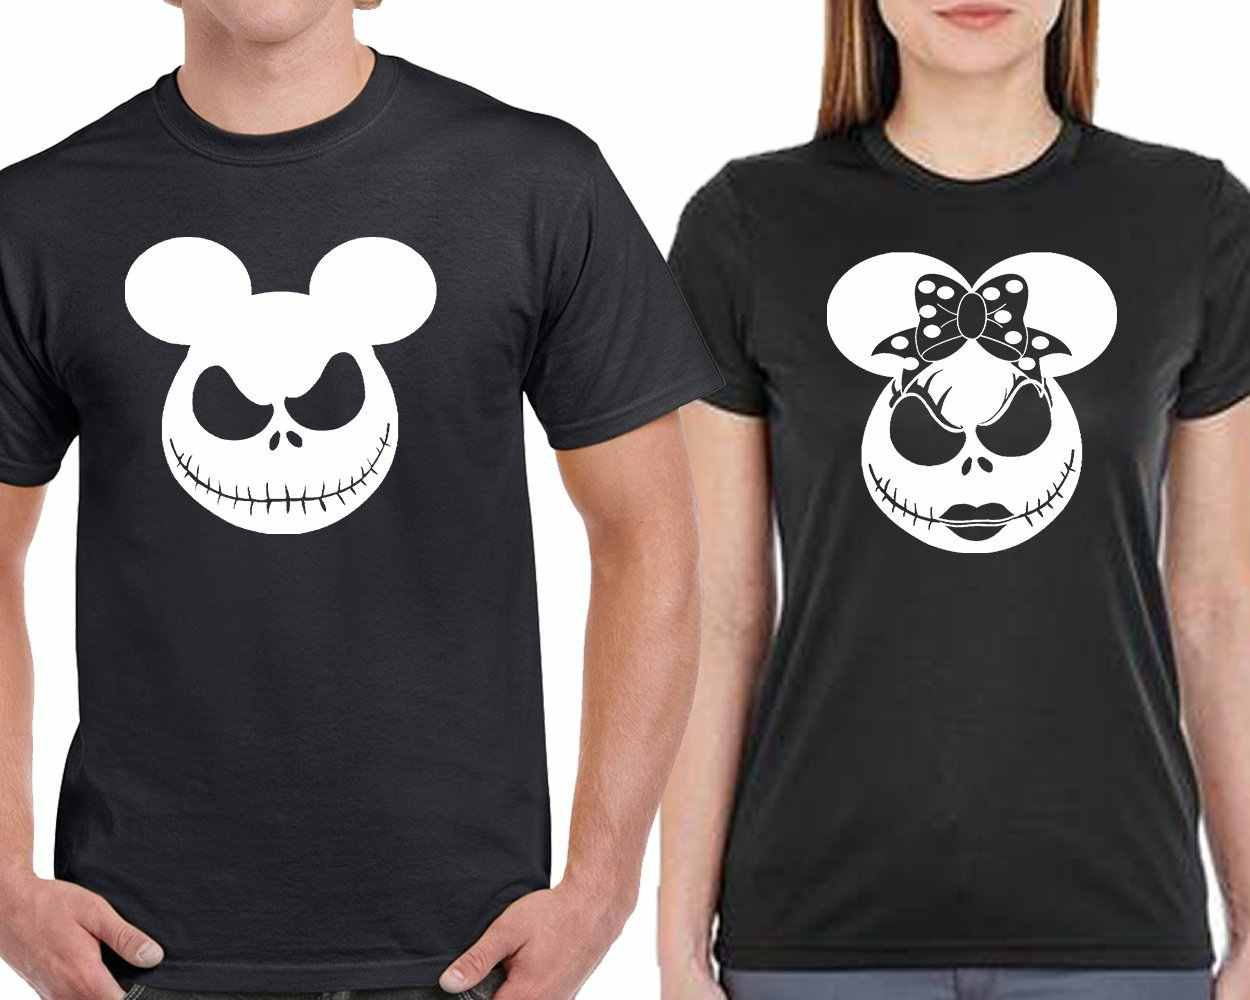 da51b51d0 Detail Feedback Questions about Nightmare Before Christmas T shirt Jack and  Sally Tee shirt Minnie Mouse Micky Matching Couples Tee shirt on  Aliexpress.com ...